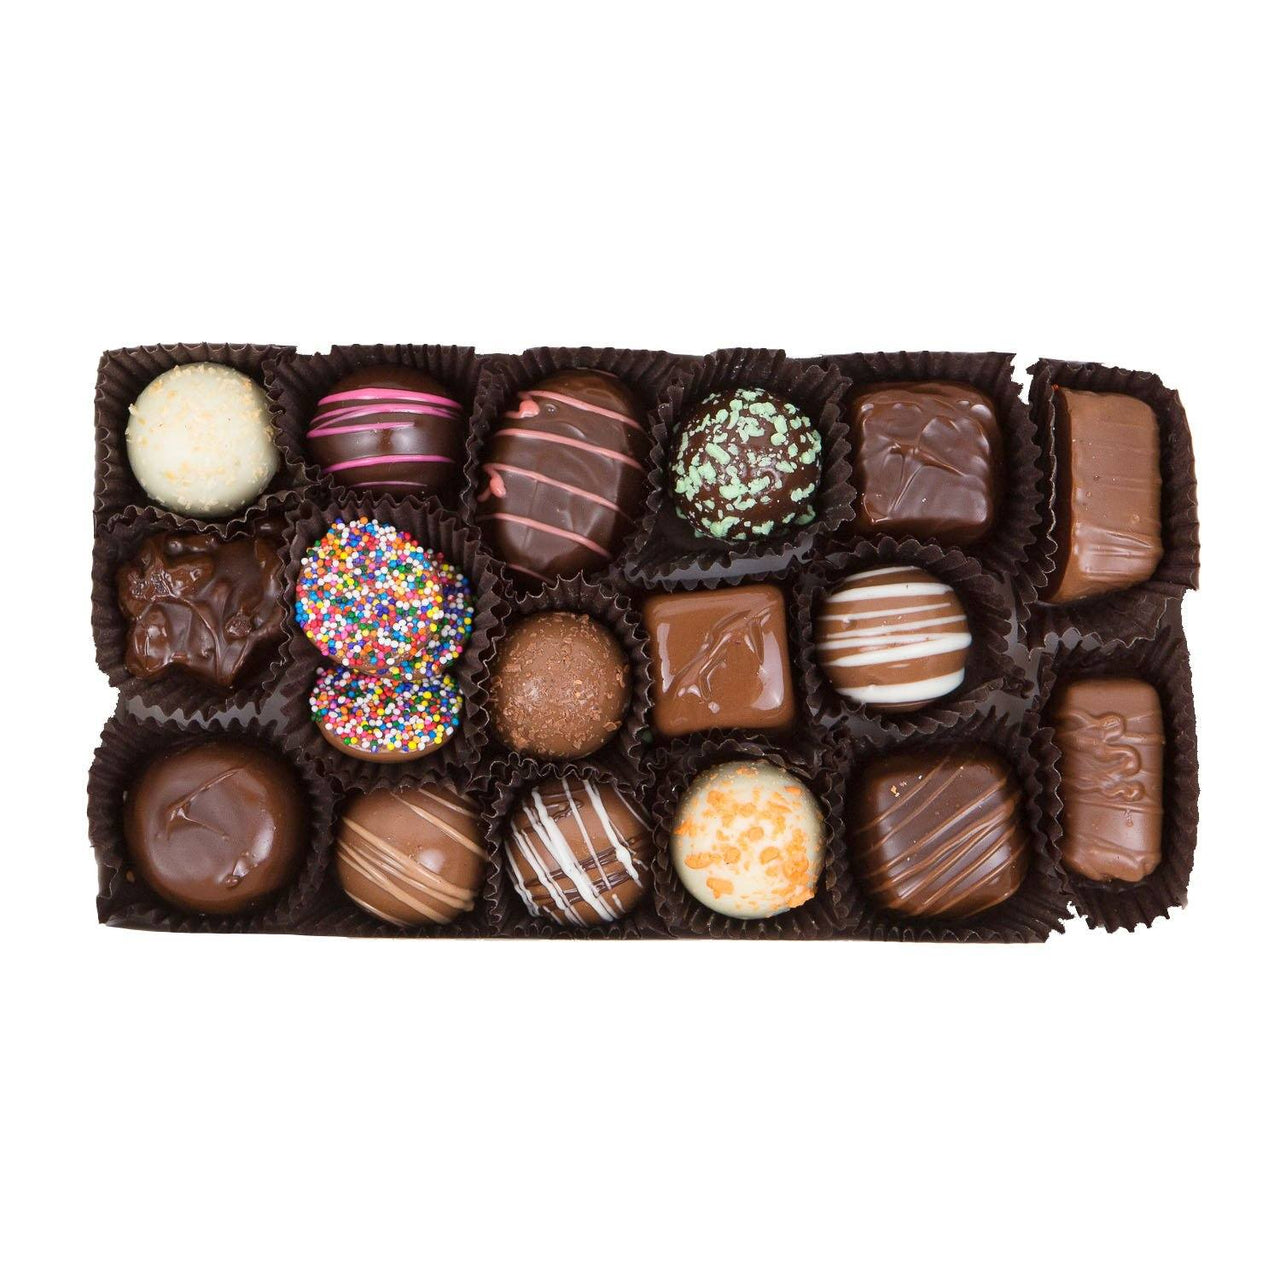 Gifts for Your Sister - Assorted Chocolate Gift Box - Jackie's Chocolate (1487128854563)